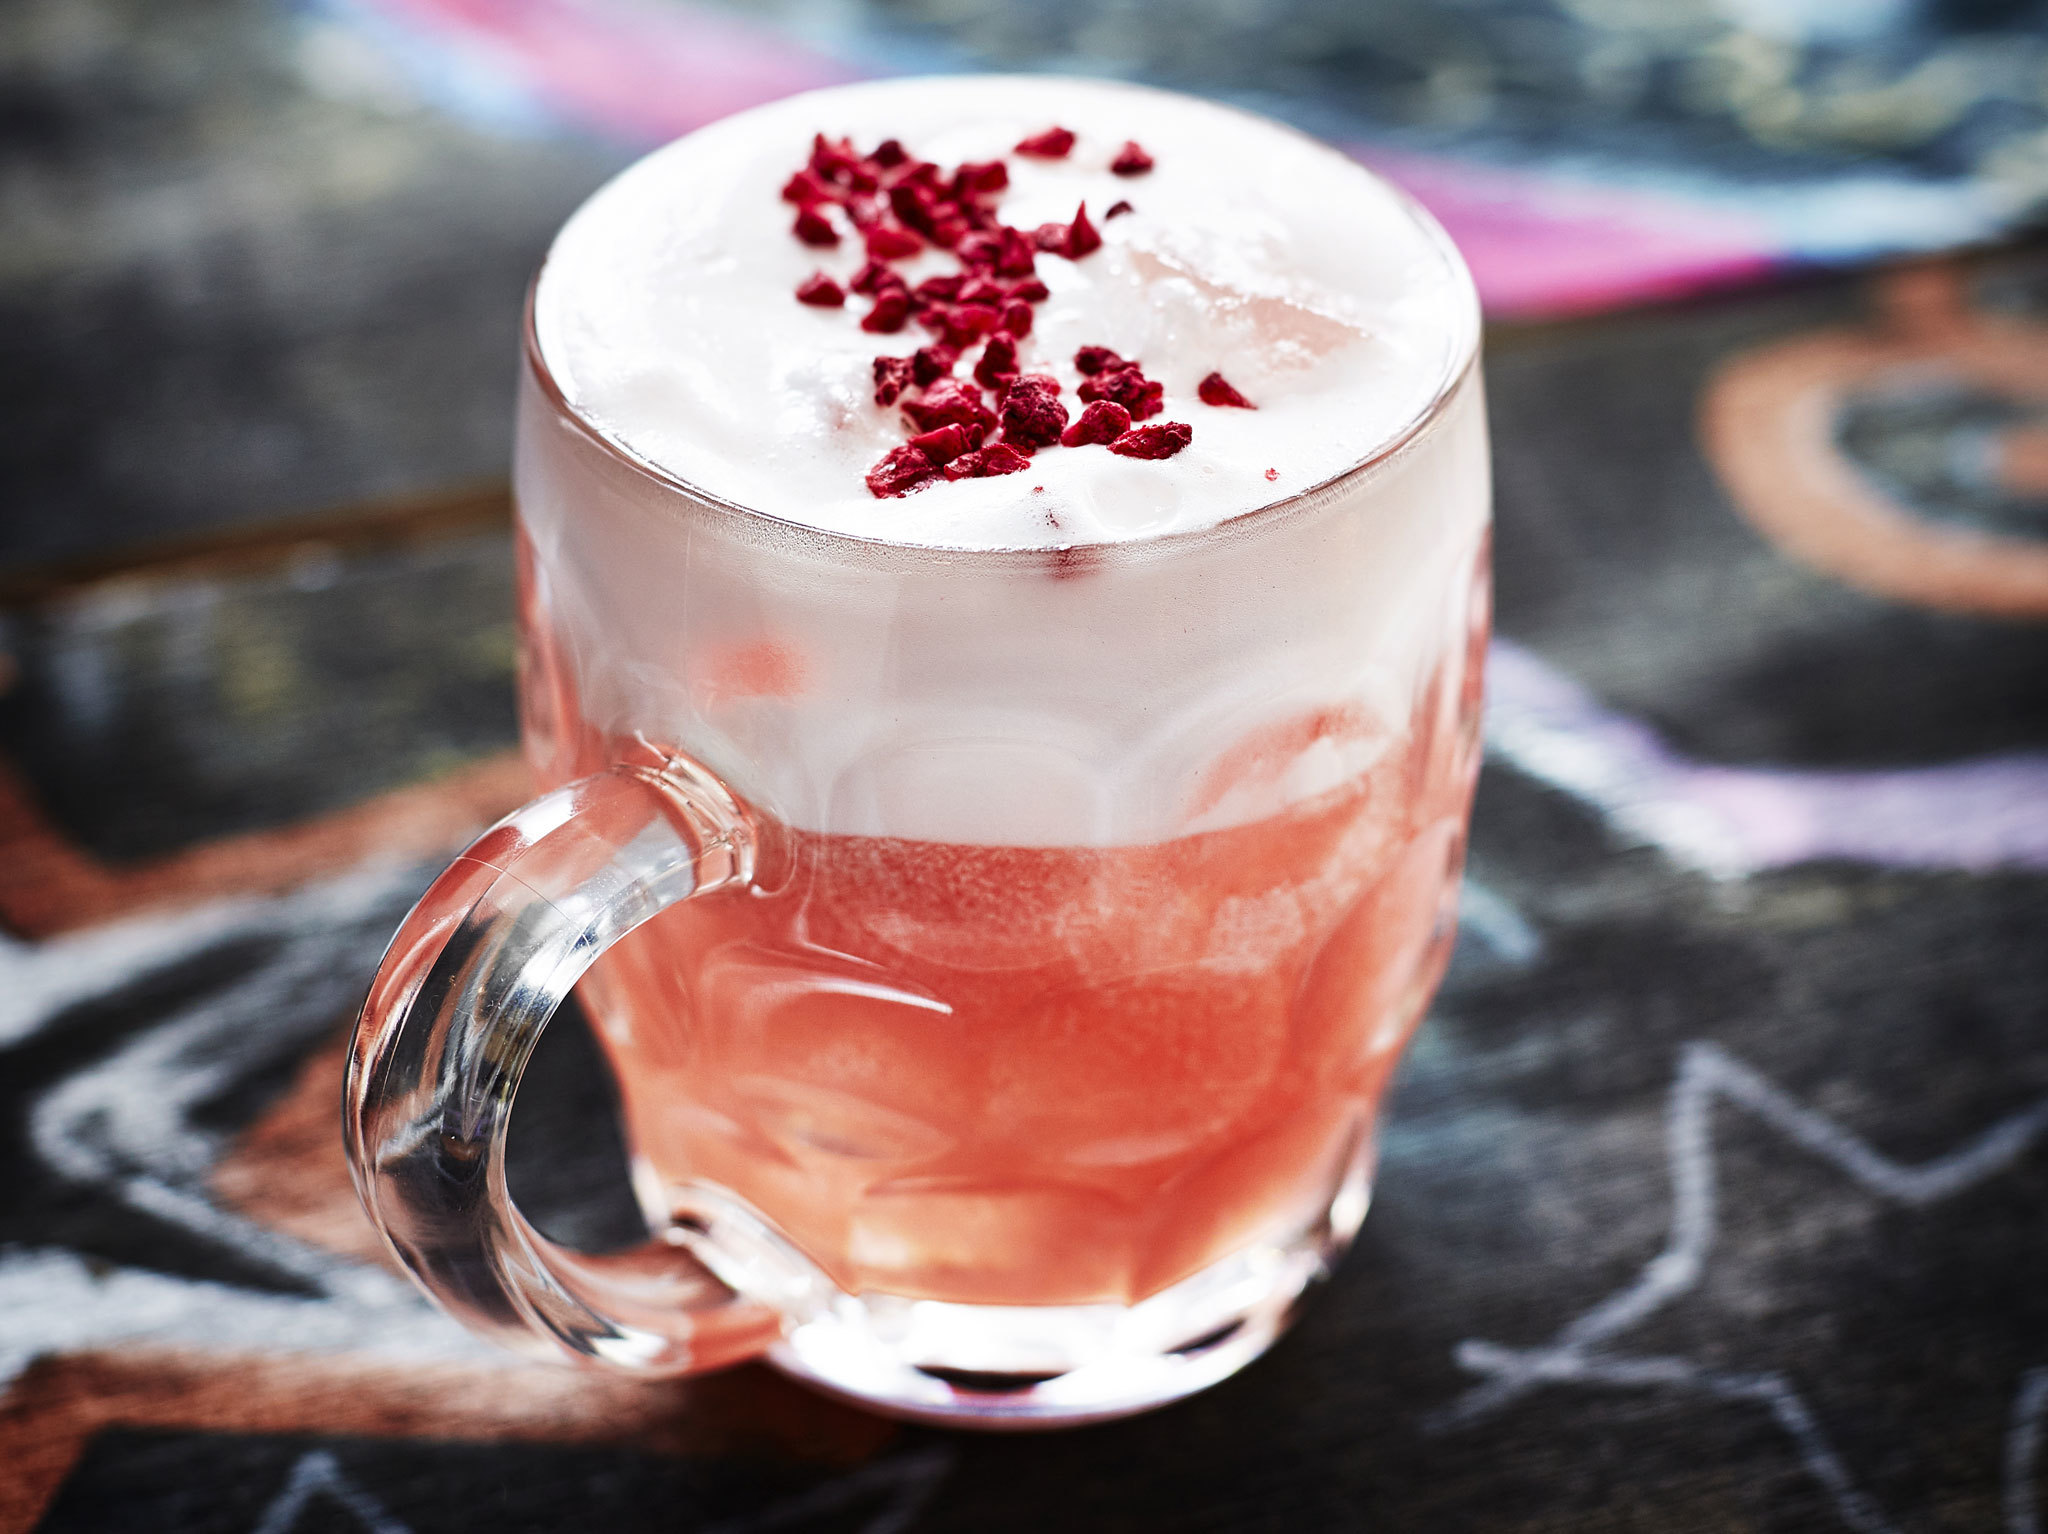 London's best restaurants for drinking cocktails- Chick 'n' Sours